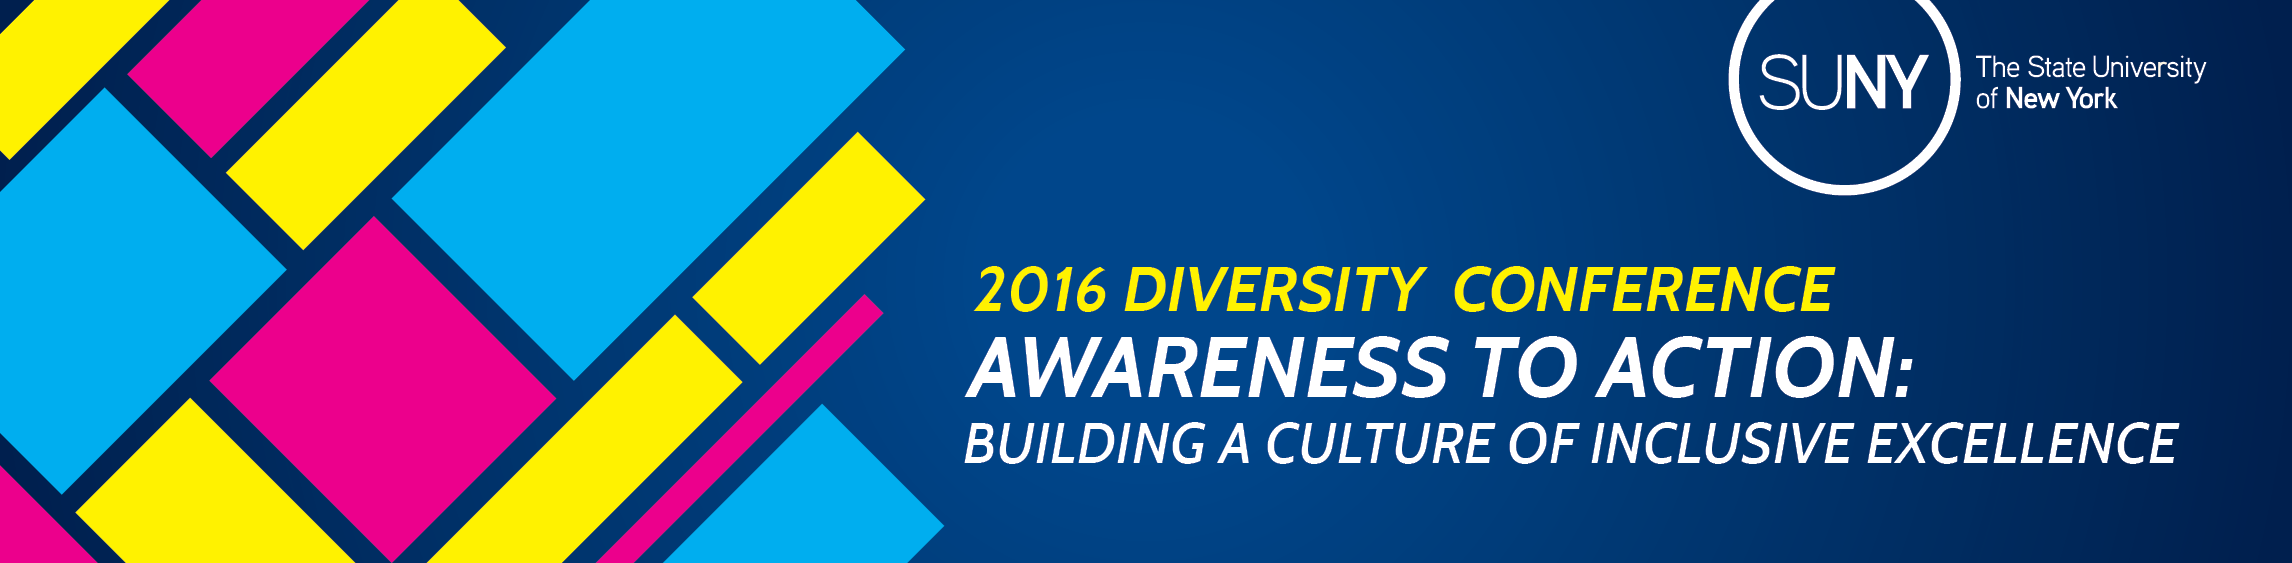 Diversity Conference Banner_550x135